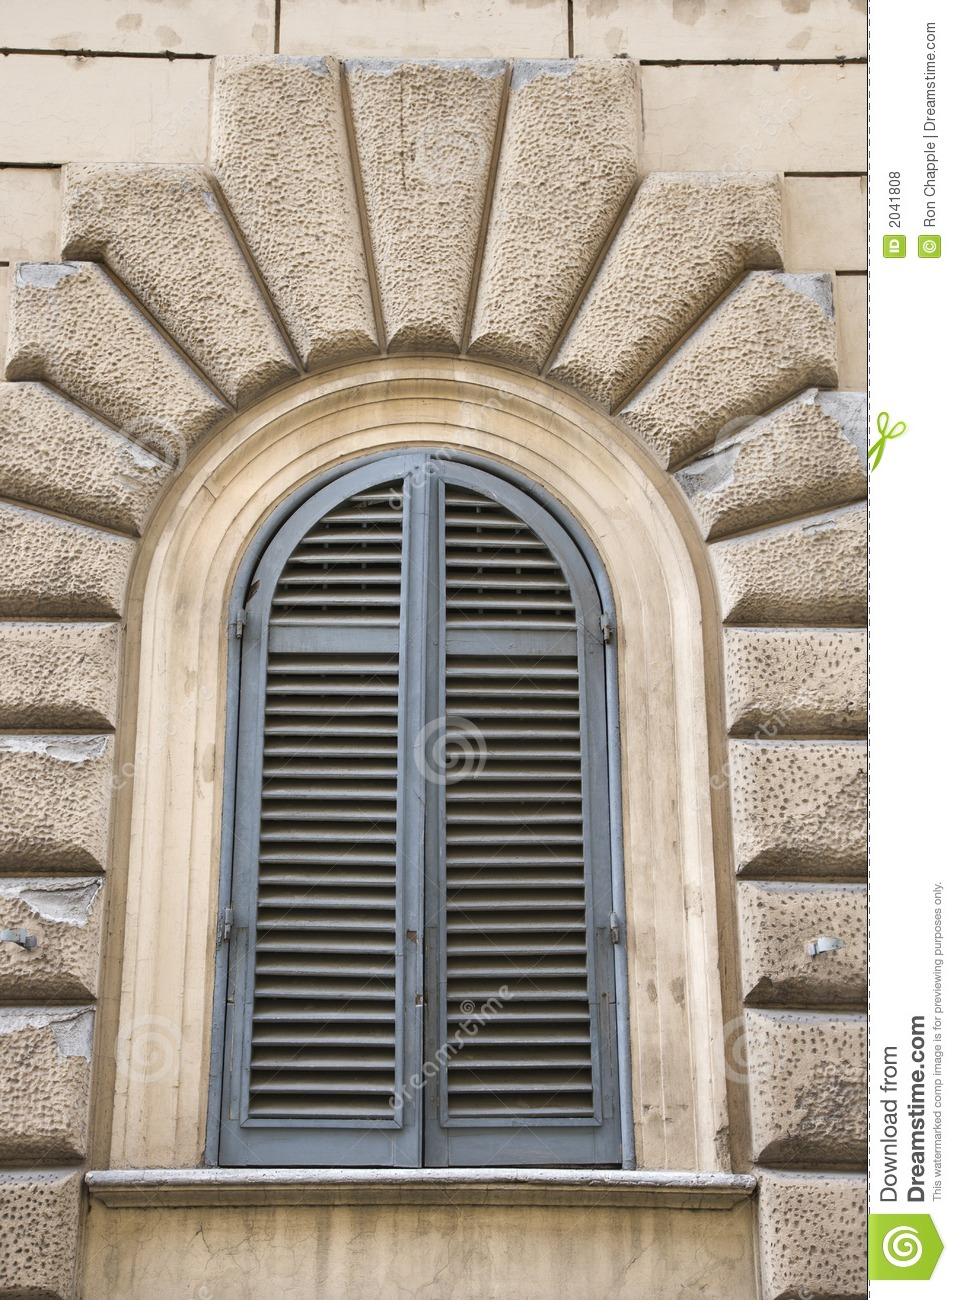 Arched window closed shutters italy stock photo image - European exterior window shutters ...